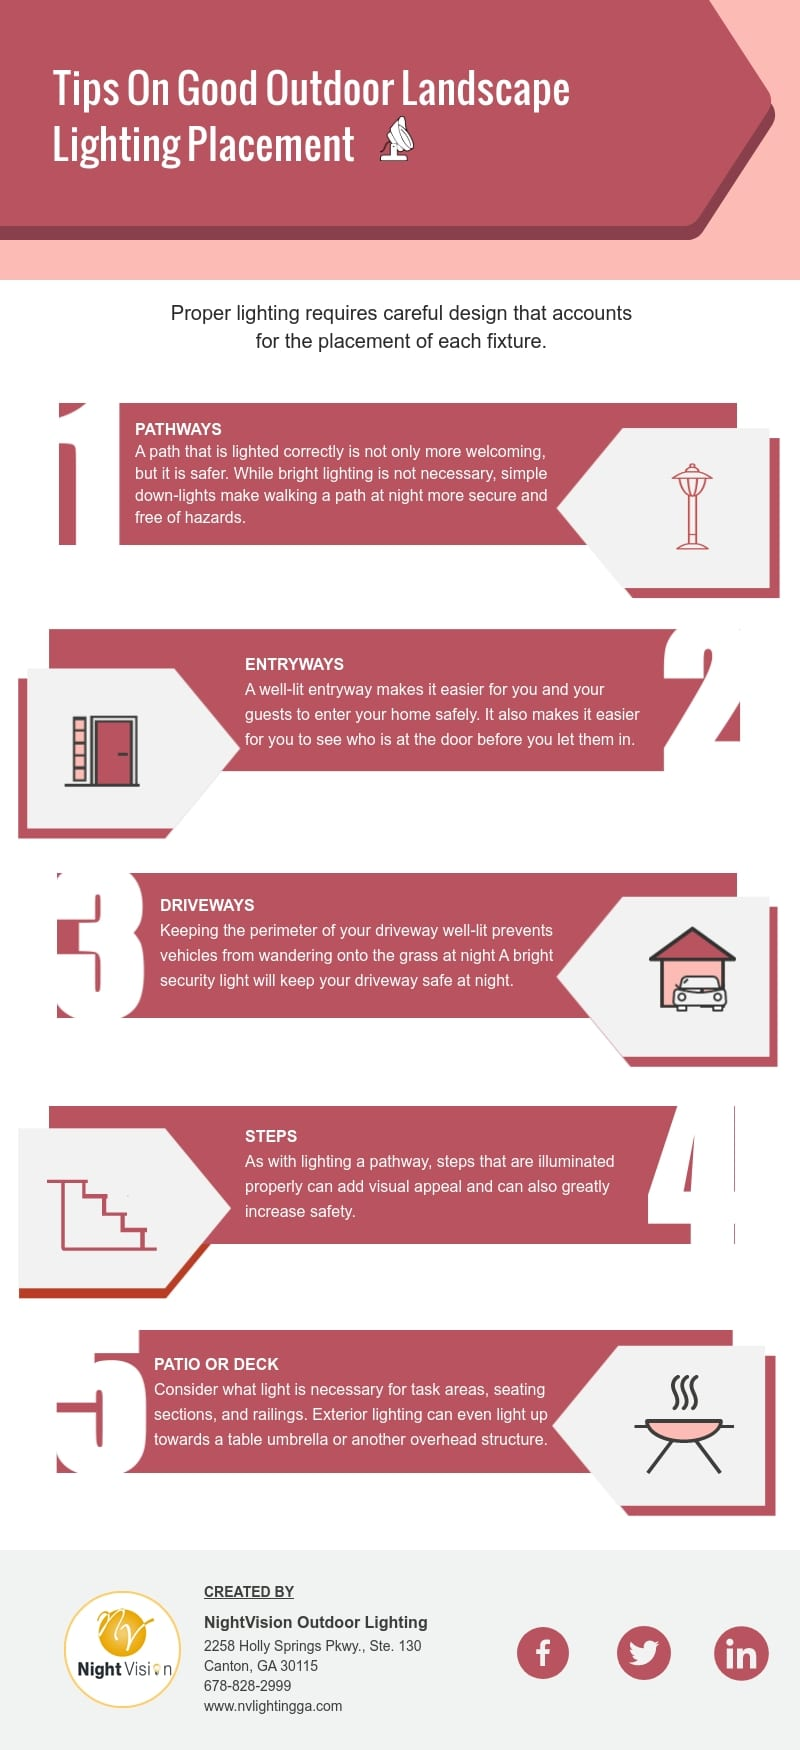 Tips On Good Outdoor Landscape Lighting Placement [infographic]